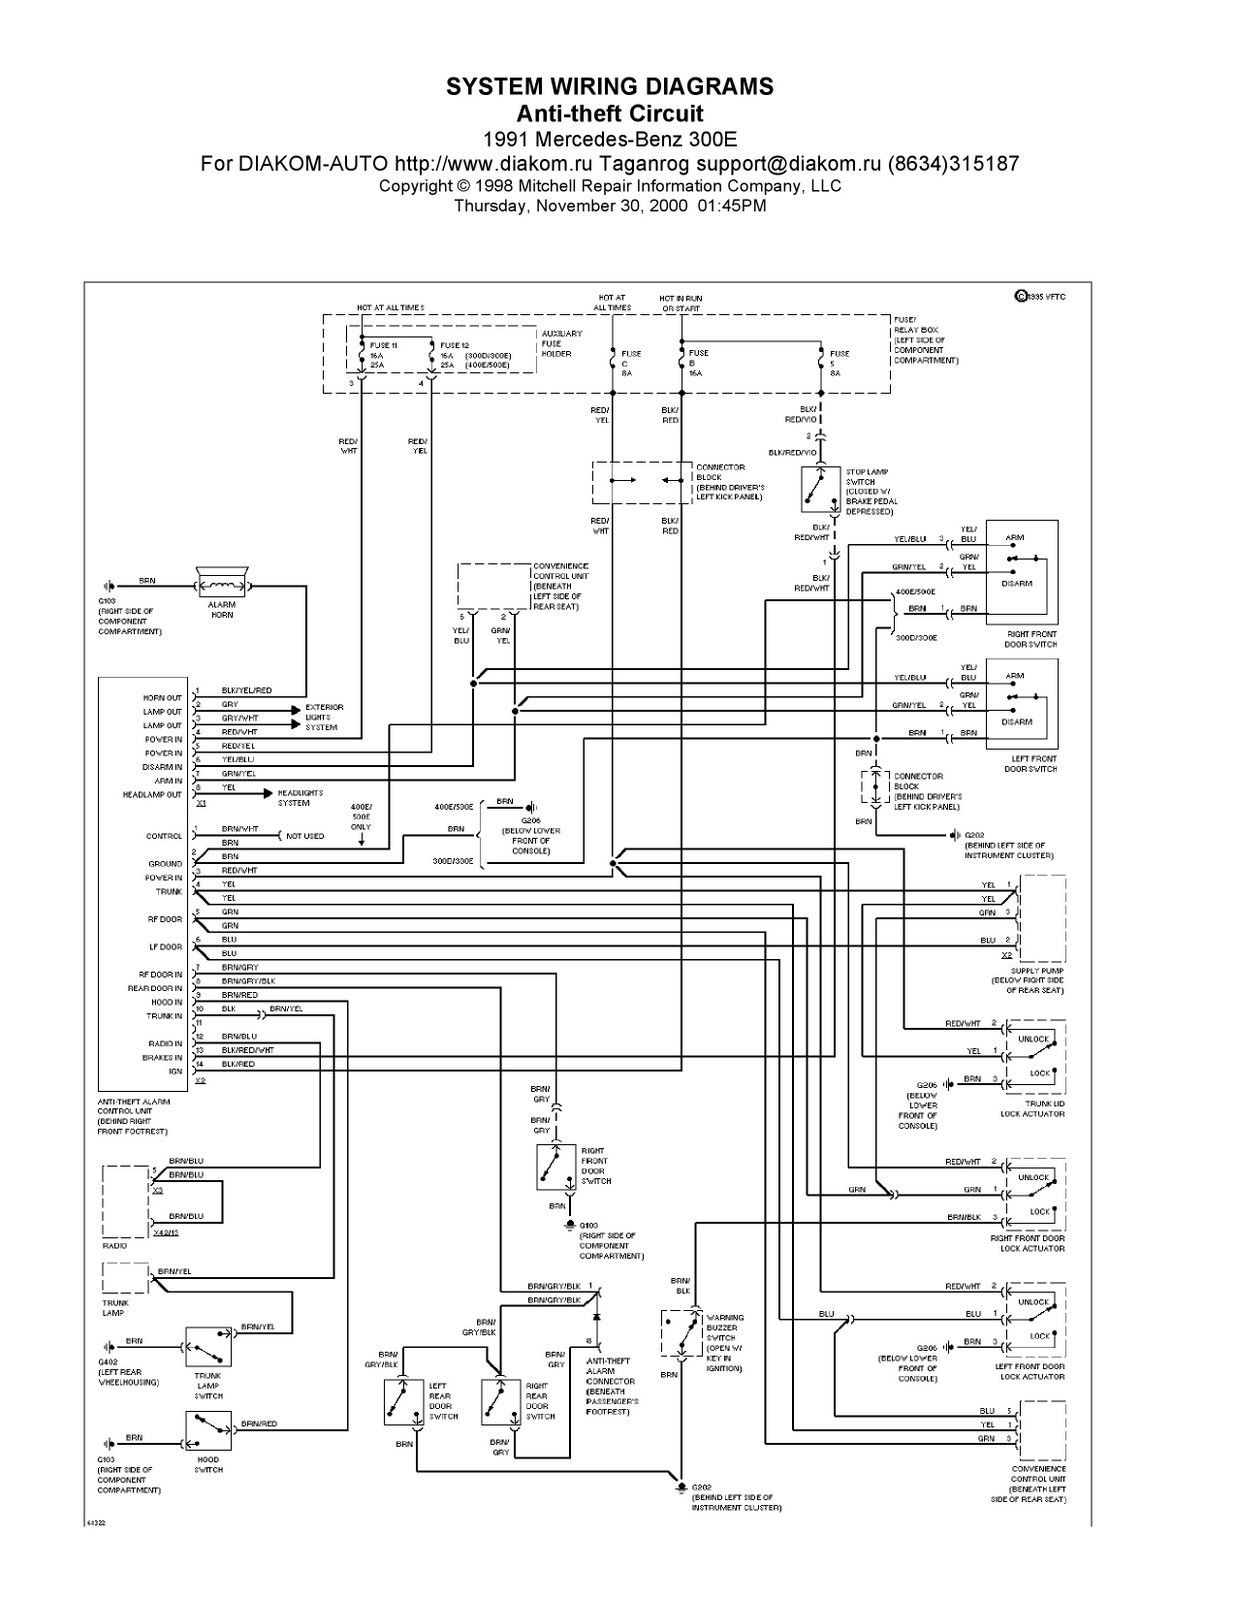 Unique W211 Amplifier Wiring Diagram